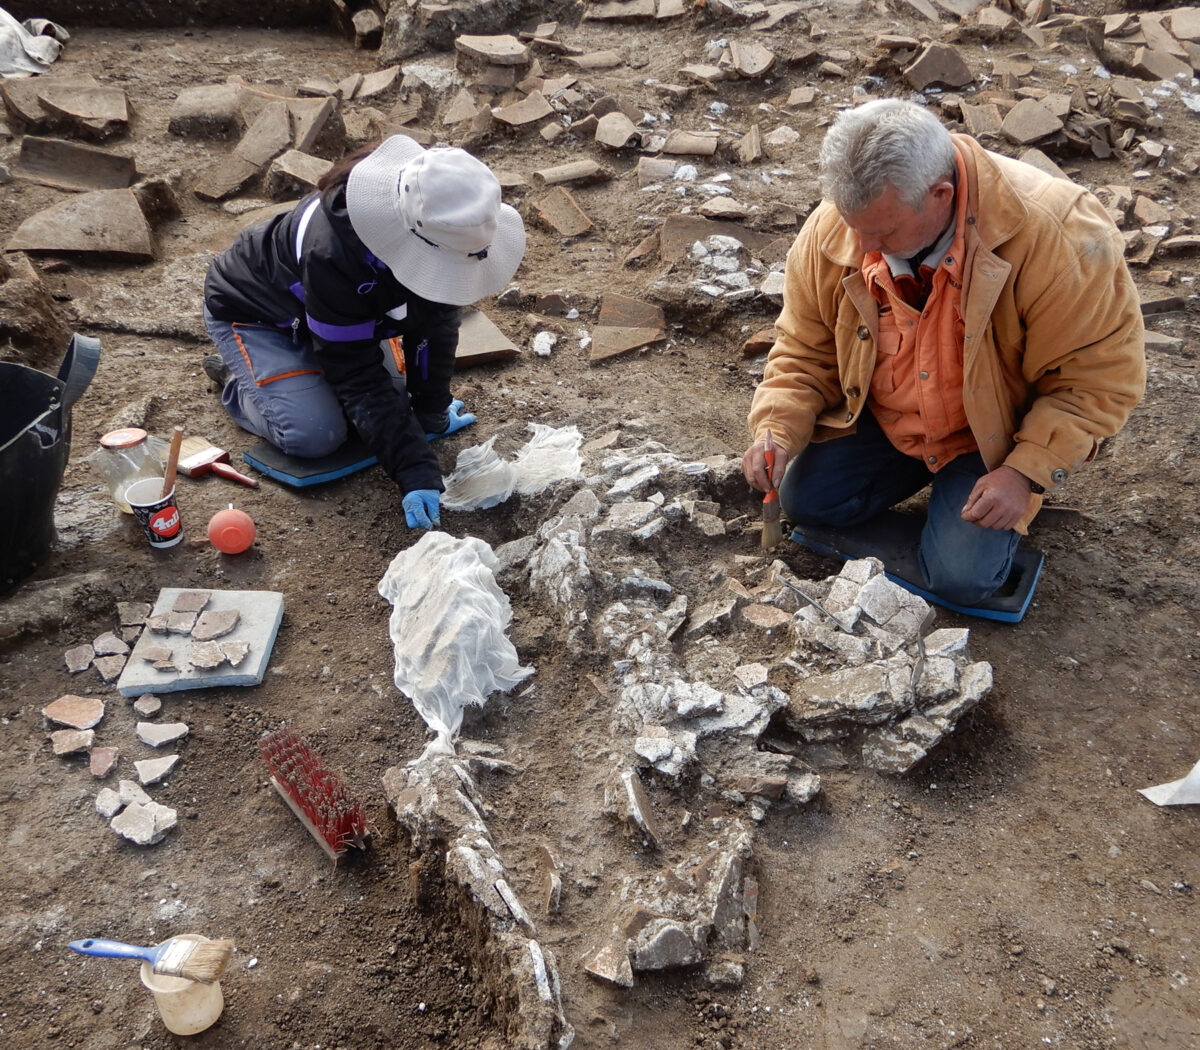 Clearing, first aid and collecting of fallen plasters. Photo: Hemathia Ephorate of Antiquities